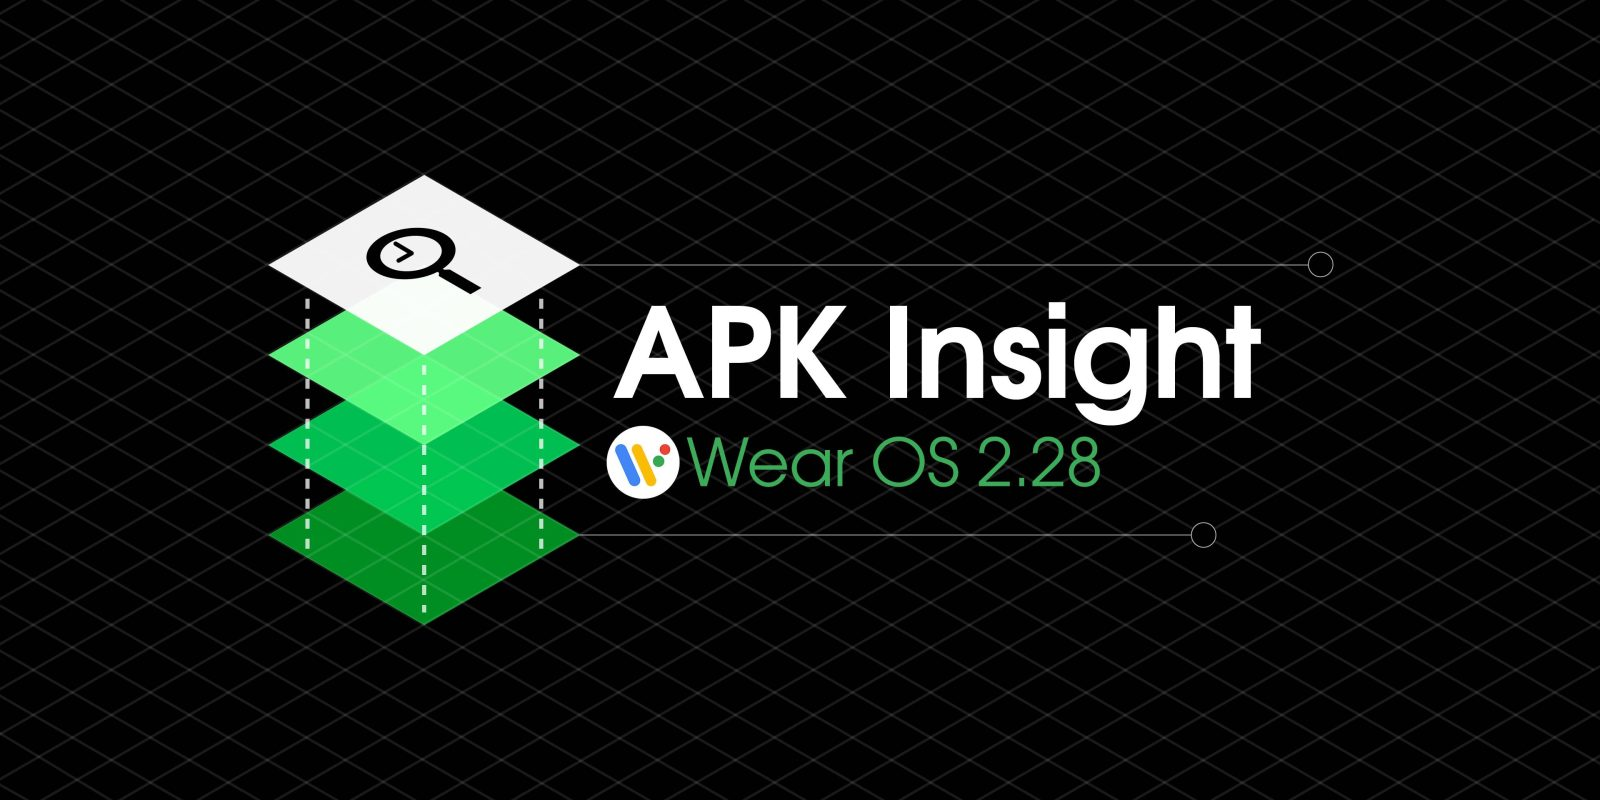 Xiaomi might be making a Wear OS smartwatch [APK Insight]